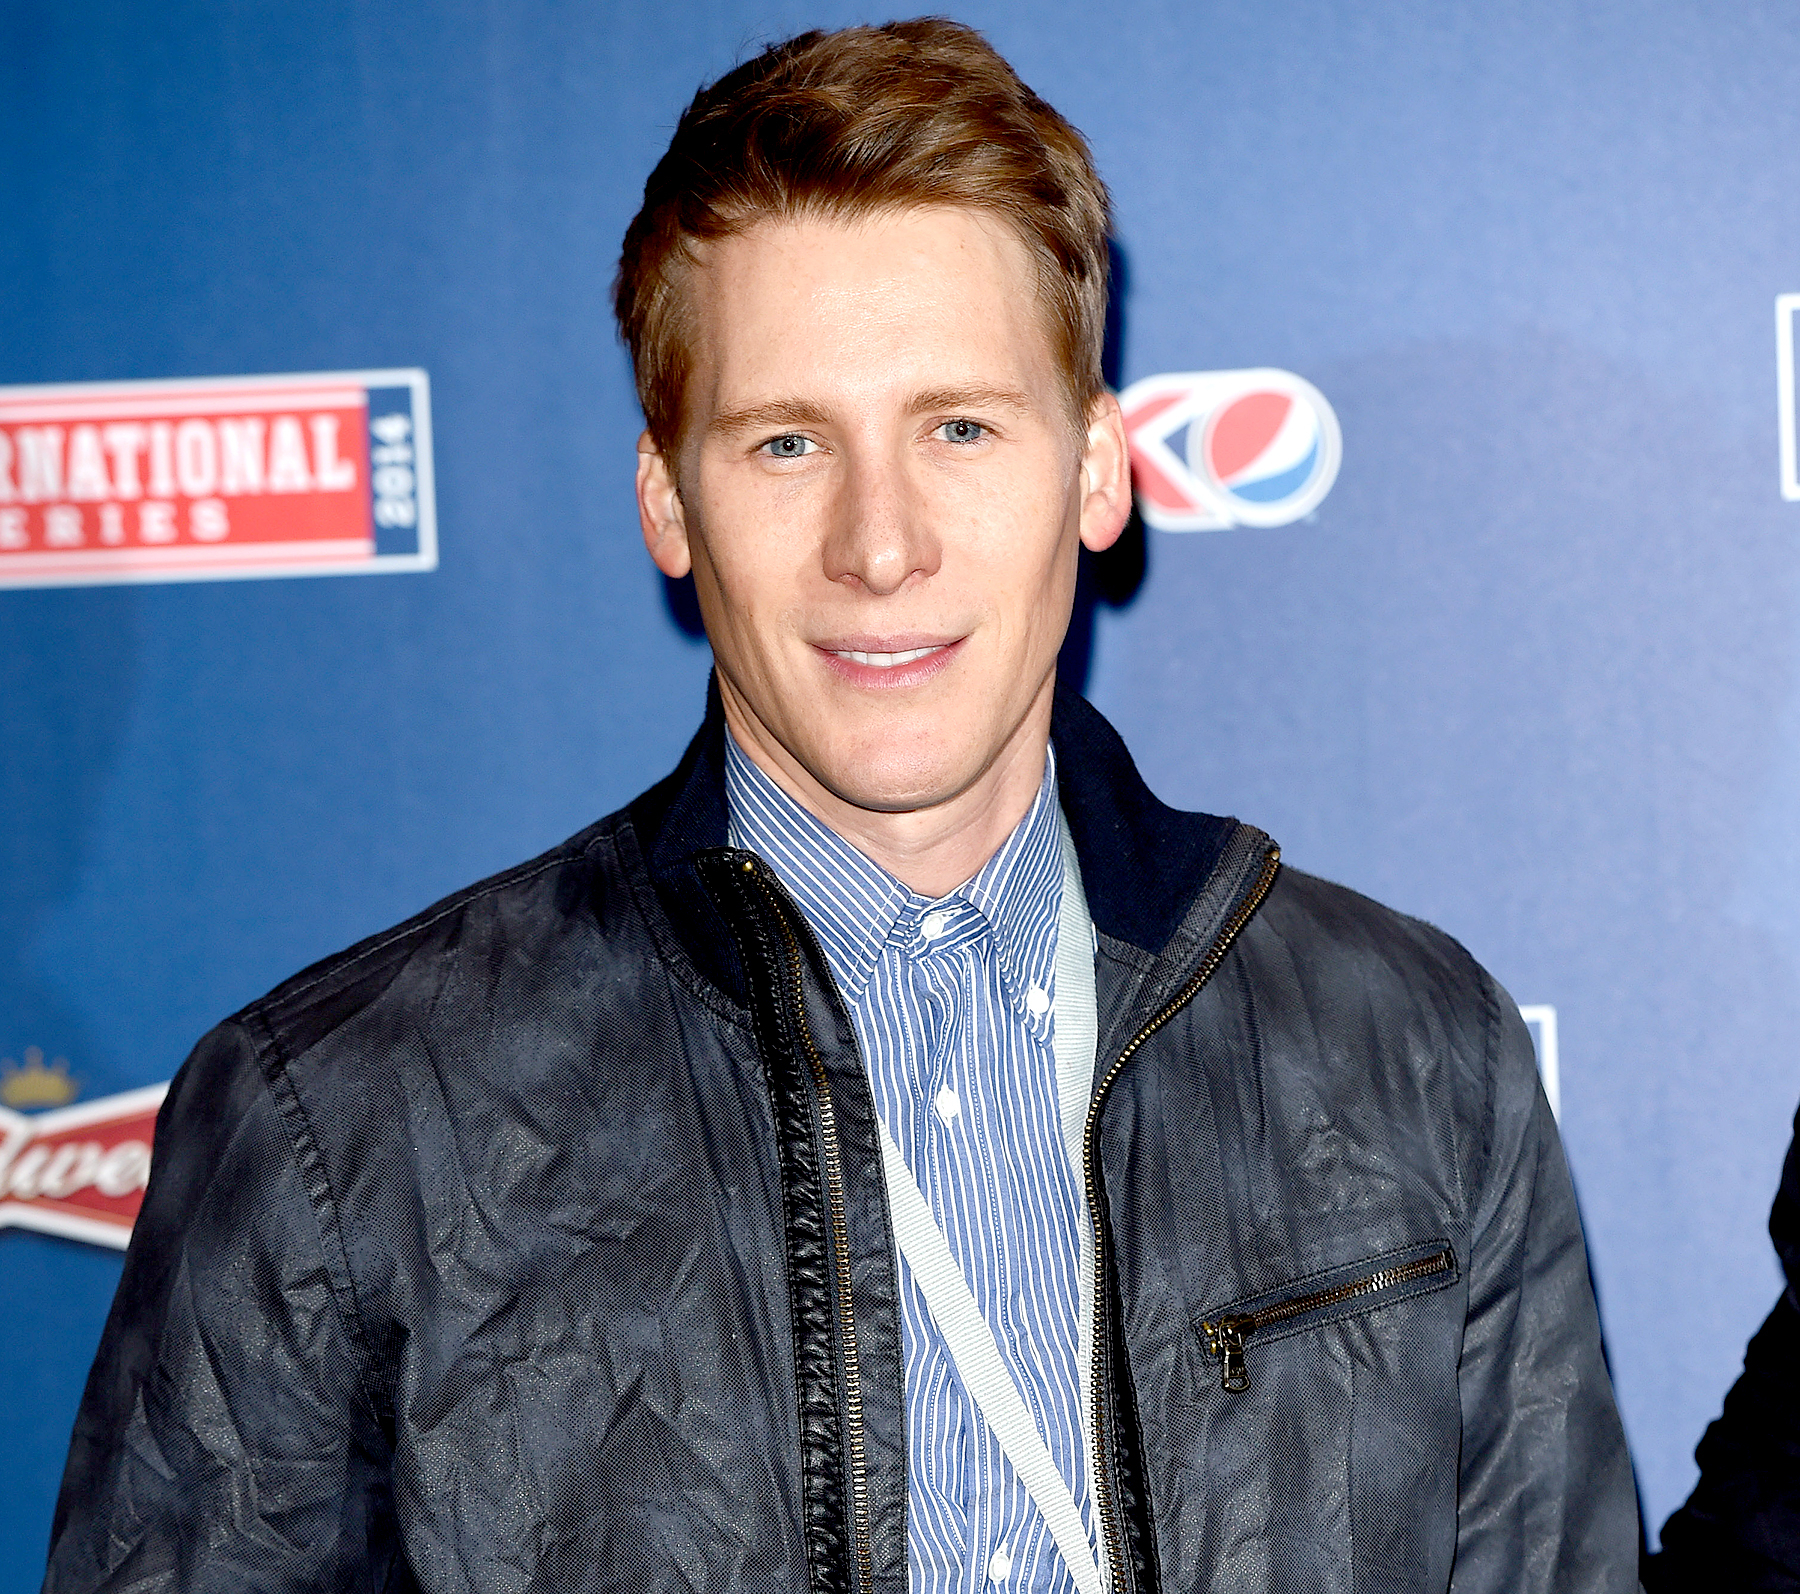 Dustin Lance Black attends as the Dallas Cowboys play the Jacksonville Jaguars in an NFL match at Wembley Stadium on November 9, 2014 in London, England.